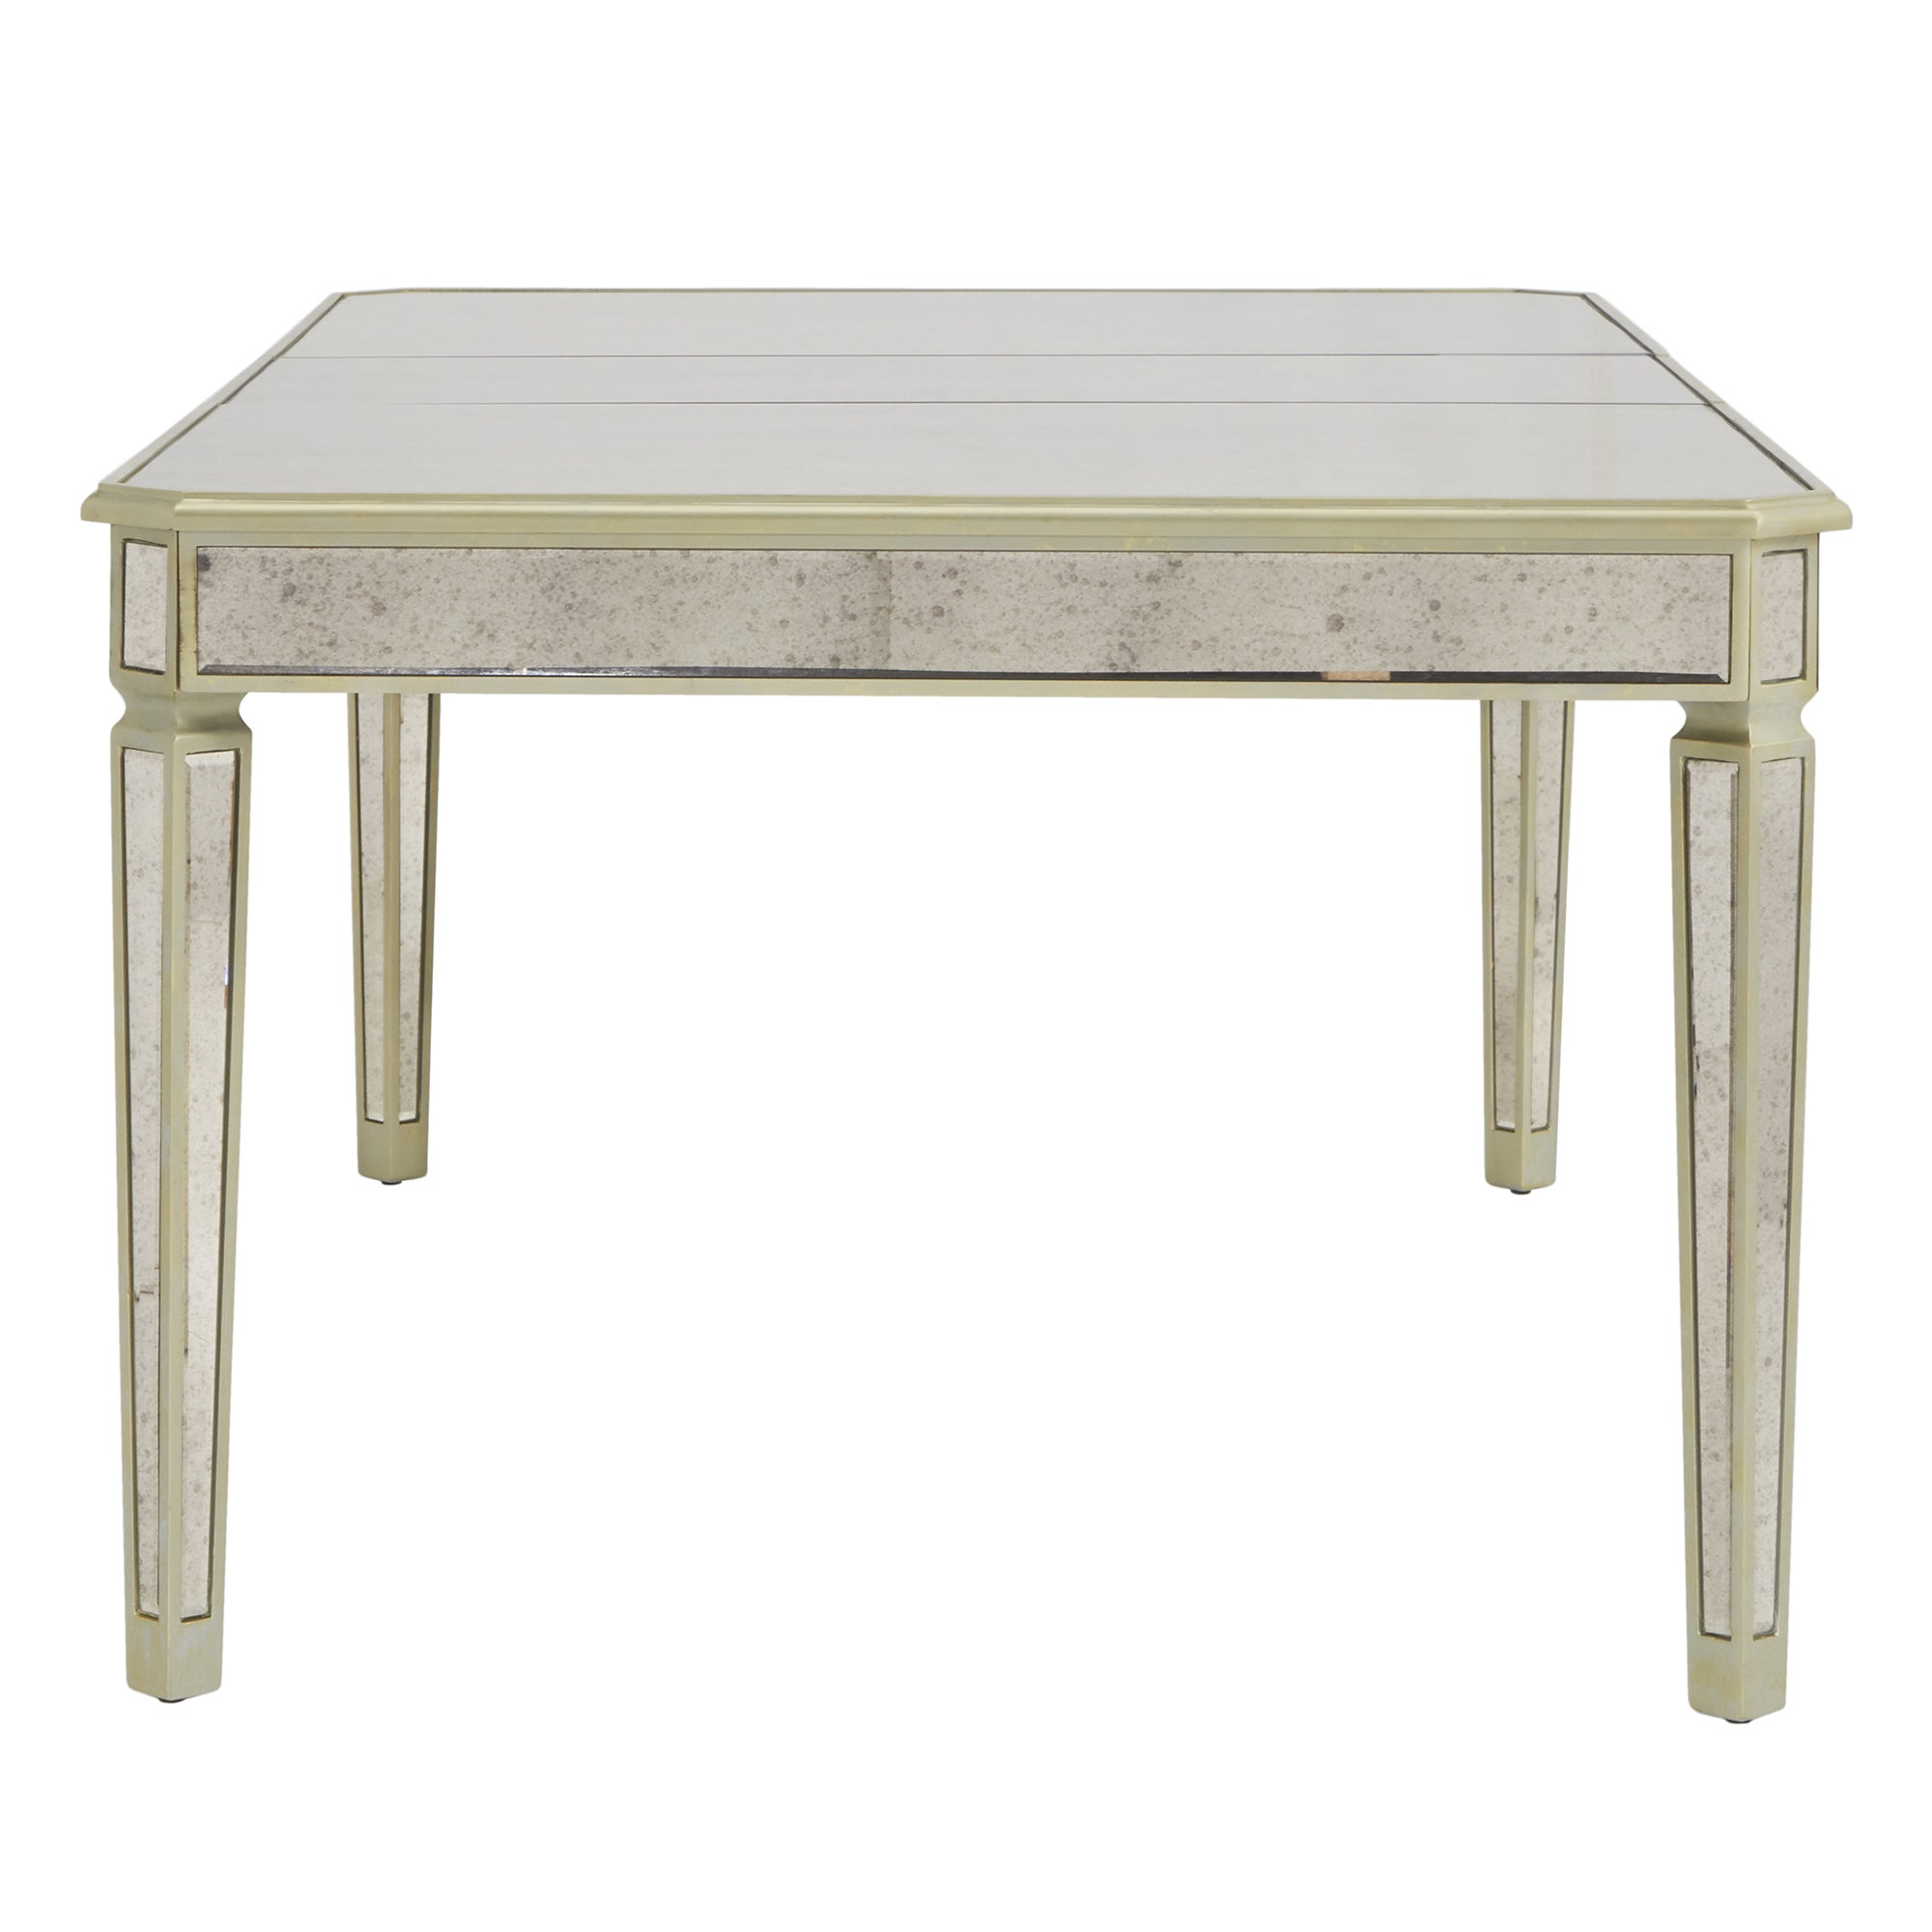 Shop Clara Antique Gold Mirrored Extending Dining Table By INSPIRE Q Bold    Free Shipping Today   Overstock.com   17953109